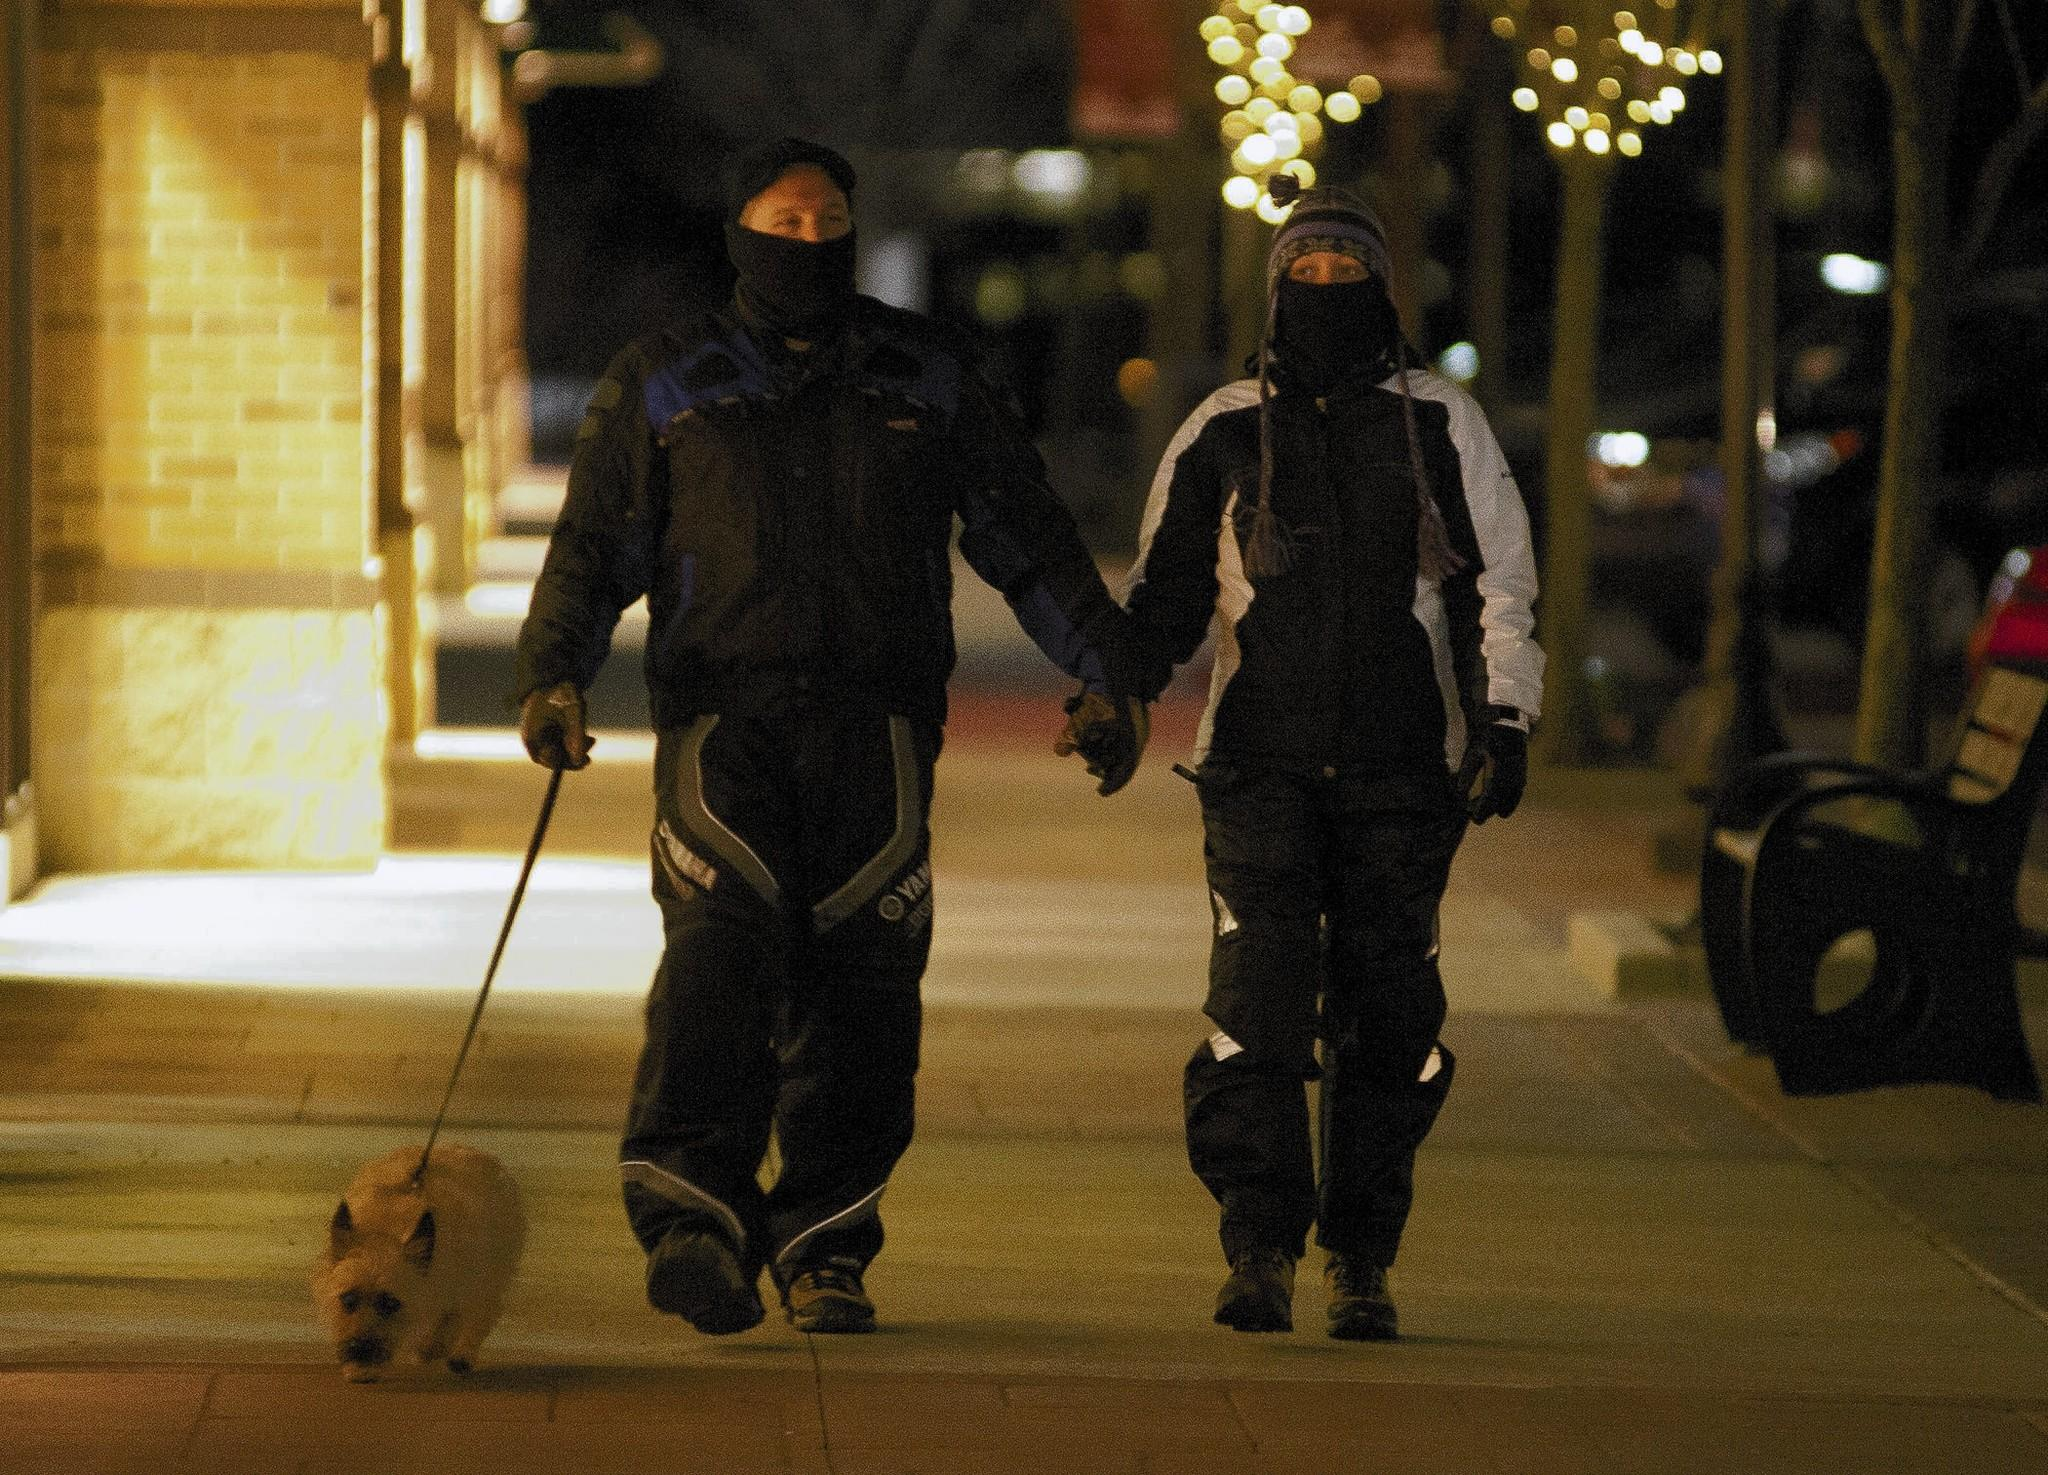 Mark and Jennifer Hogen of Coopersburg walk their dog Buddy in the frigid temperatures Monday night at the Promenade Shops at Saucon Valley.